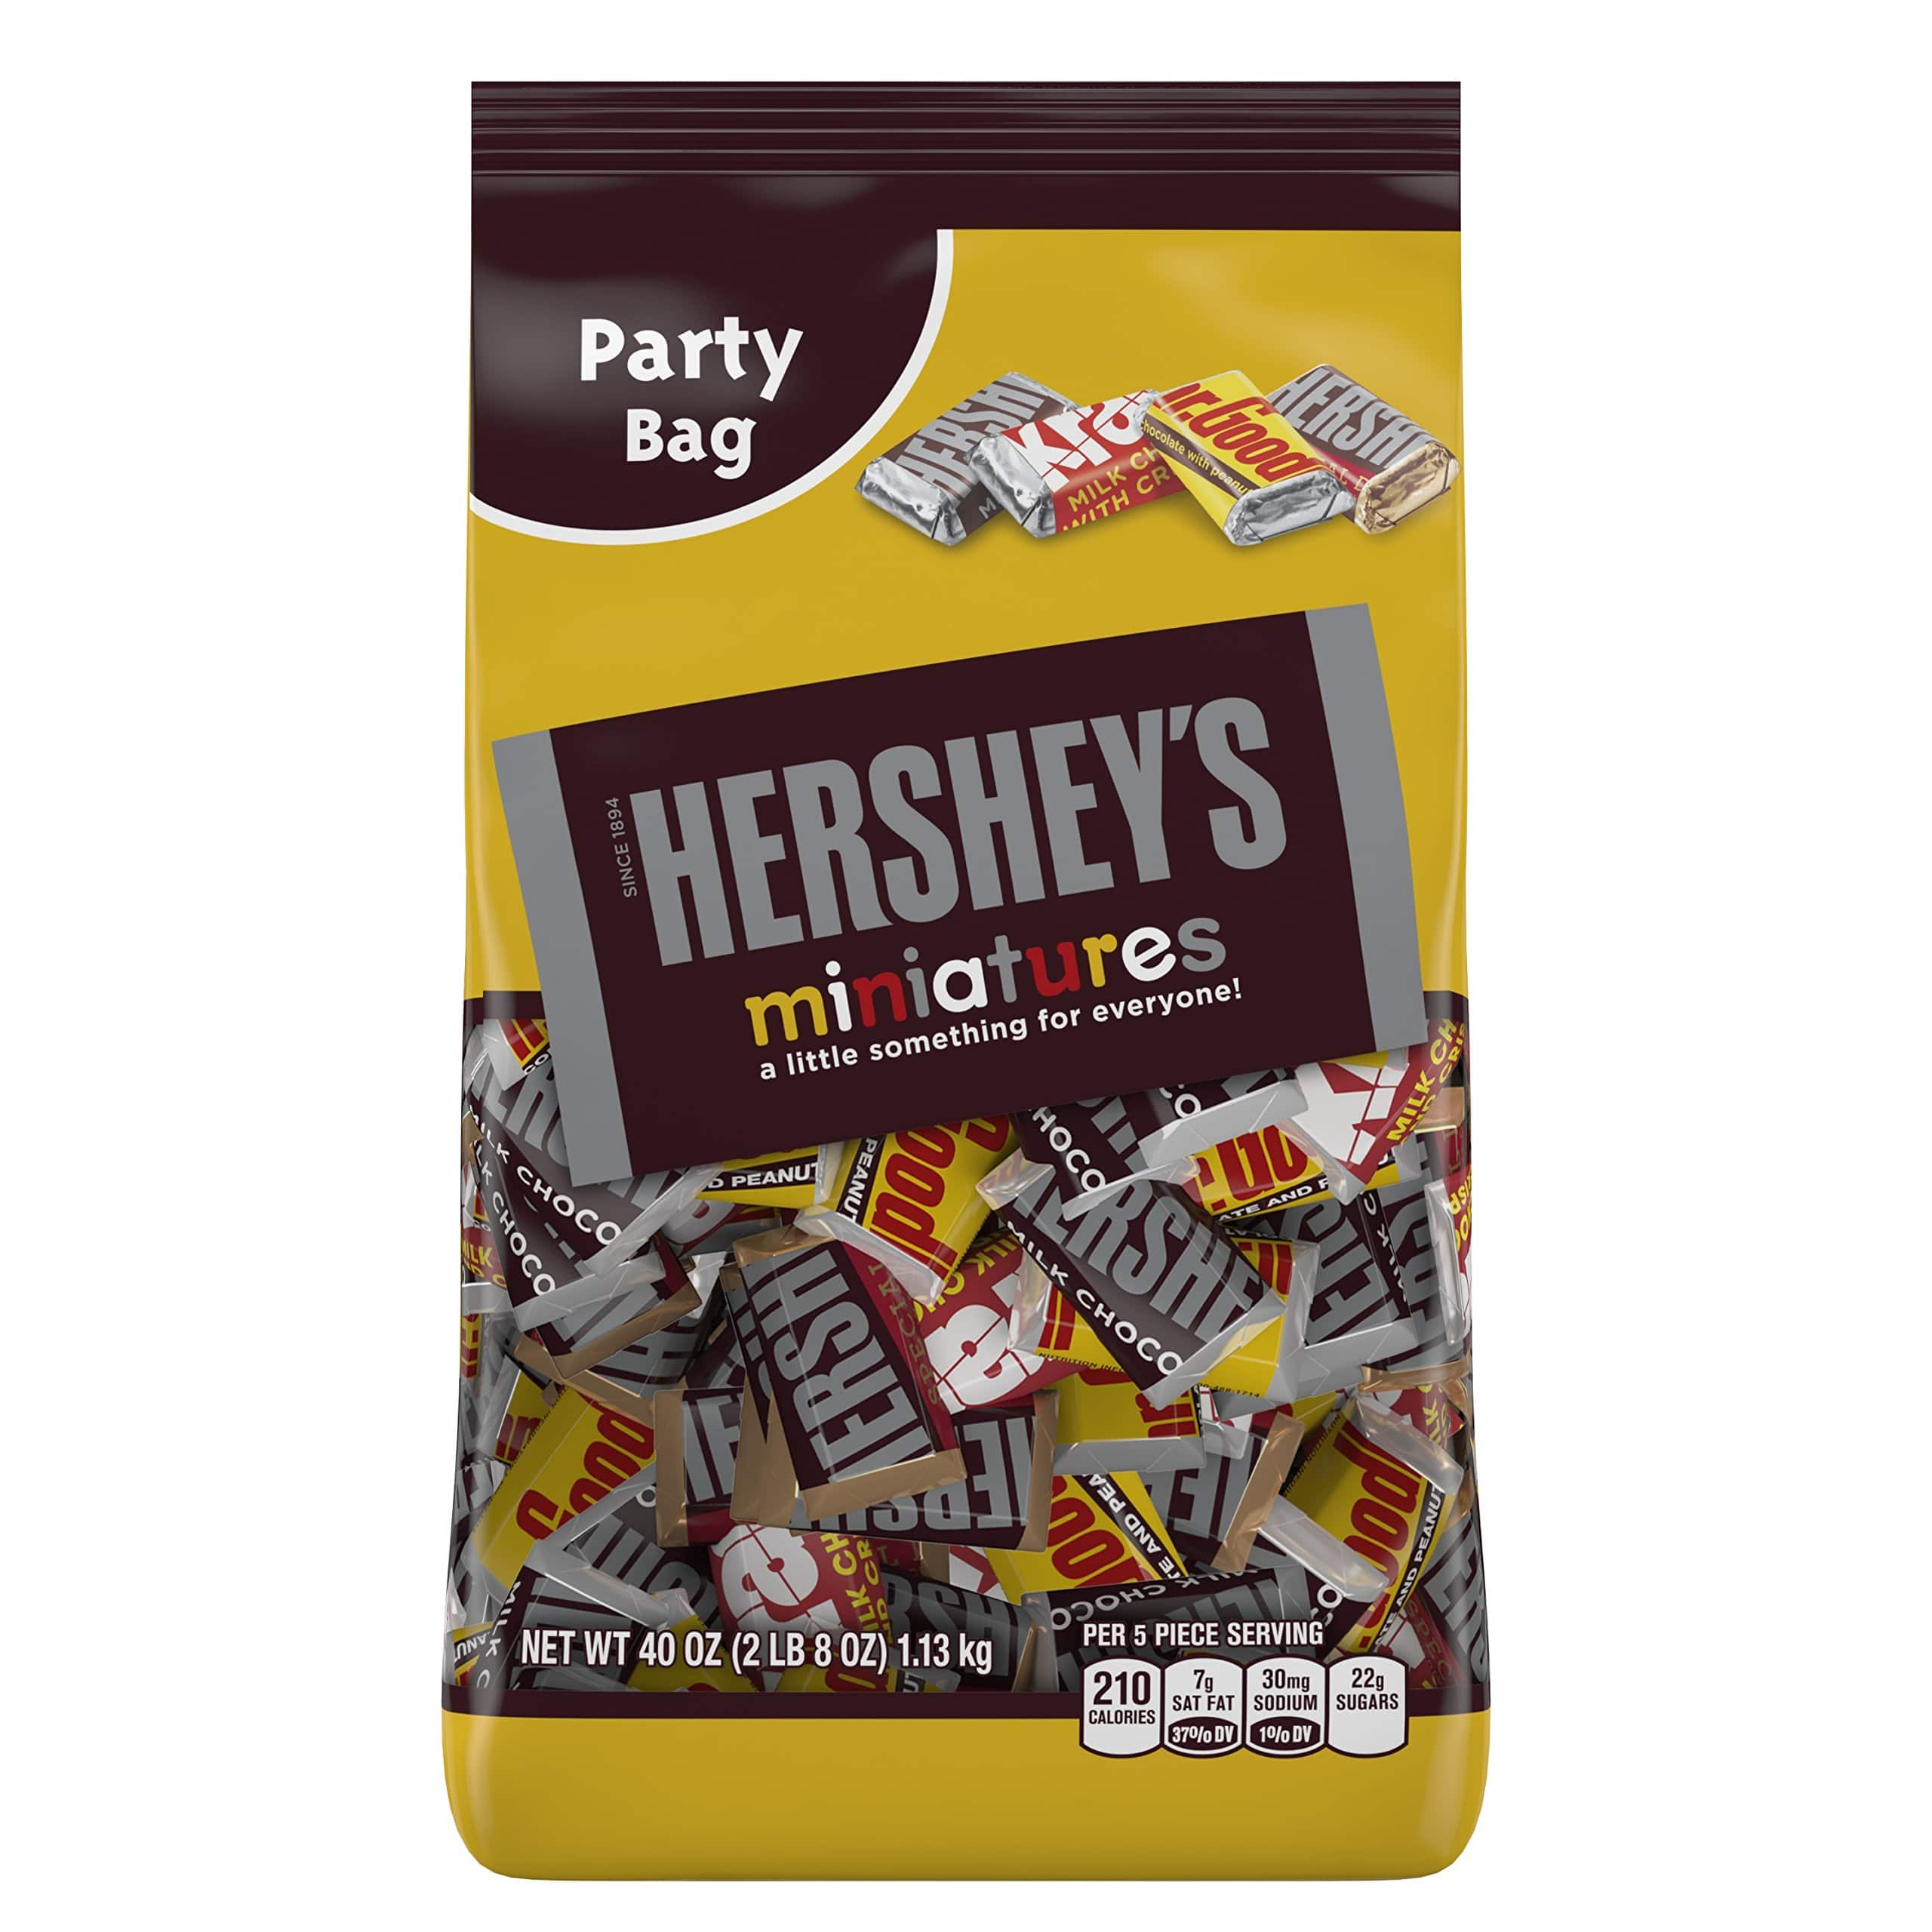 Many great candies at only .24/ounce on Amazon!  Reeses minis 40 oz $9.44, Hershey's Kisses 40 oz $8.56, Assorted minis 40 oz $9.44